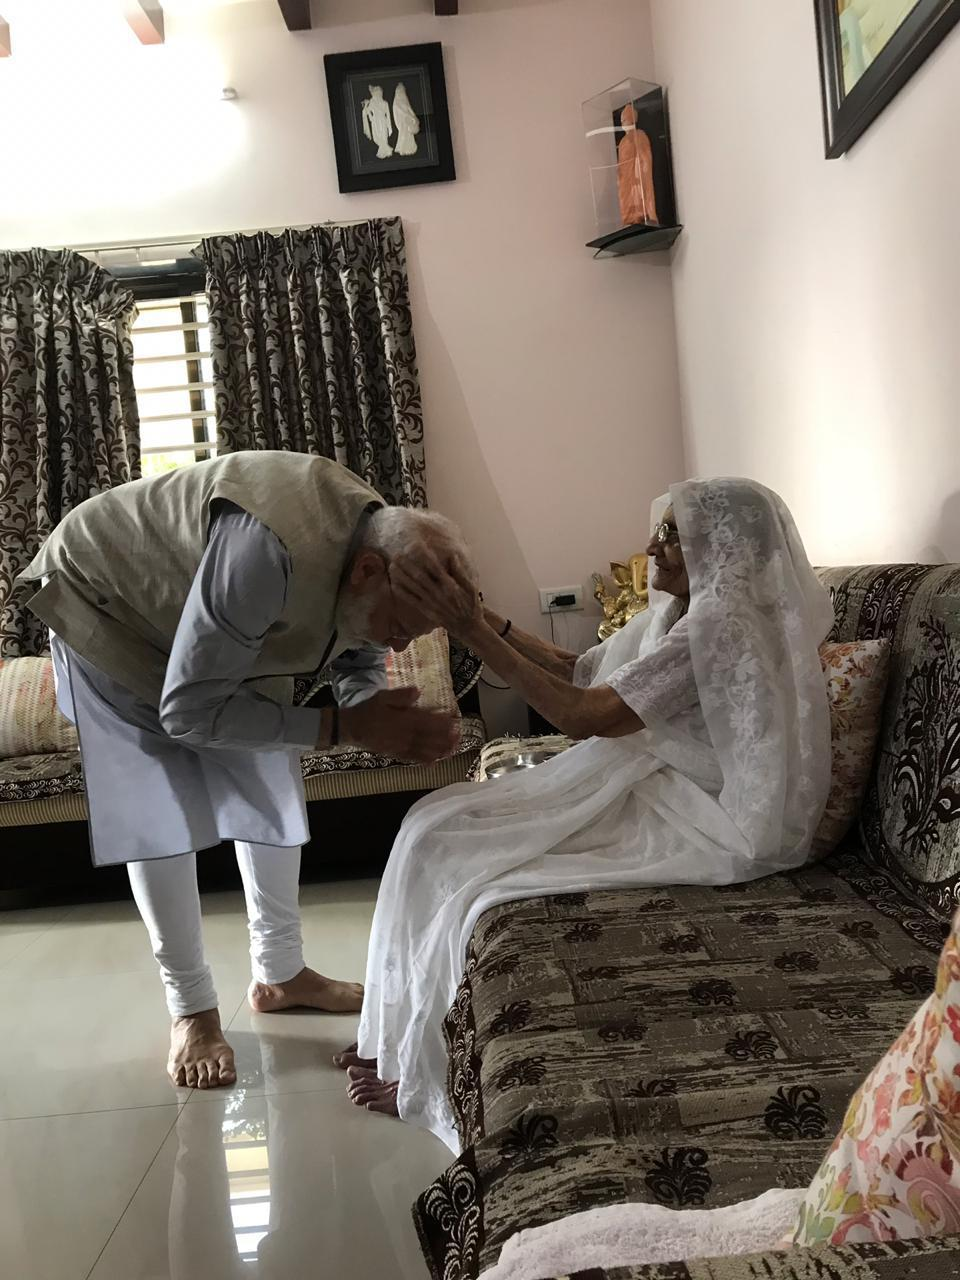 Economic Times On Twitter Gujarat Pm Modi Met His Mother At Her Residence In Gandhinagar Today He Will Cast His Vote In Ahmedabad Shortly Loksabhaelections2019 Phase3 Live Updates Https T Co Xpc42ksk3d Https T Co Qnnzpbsld6